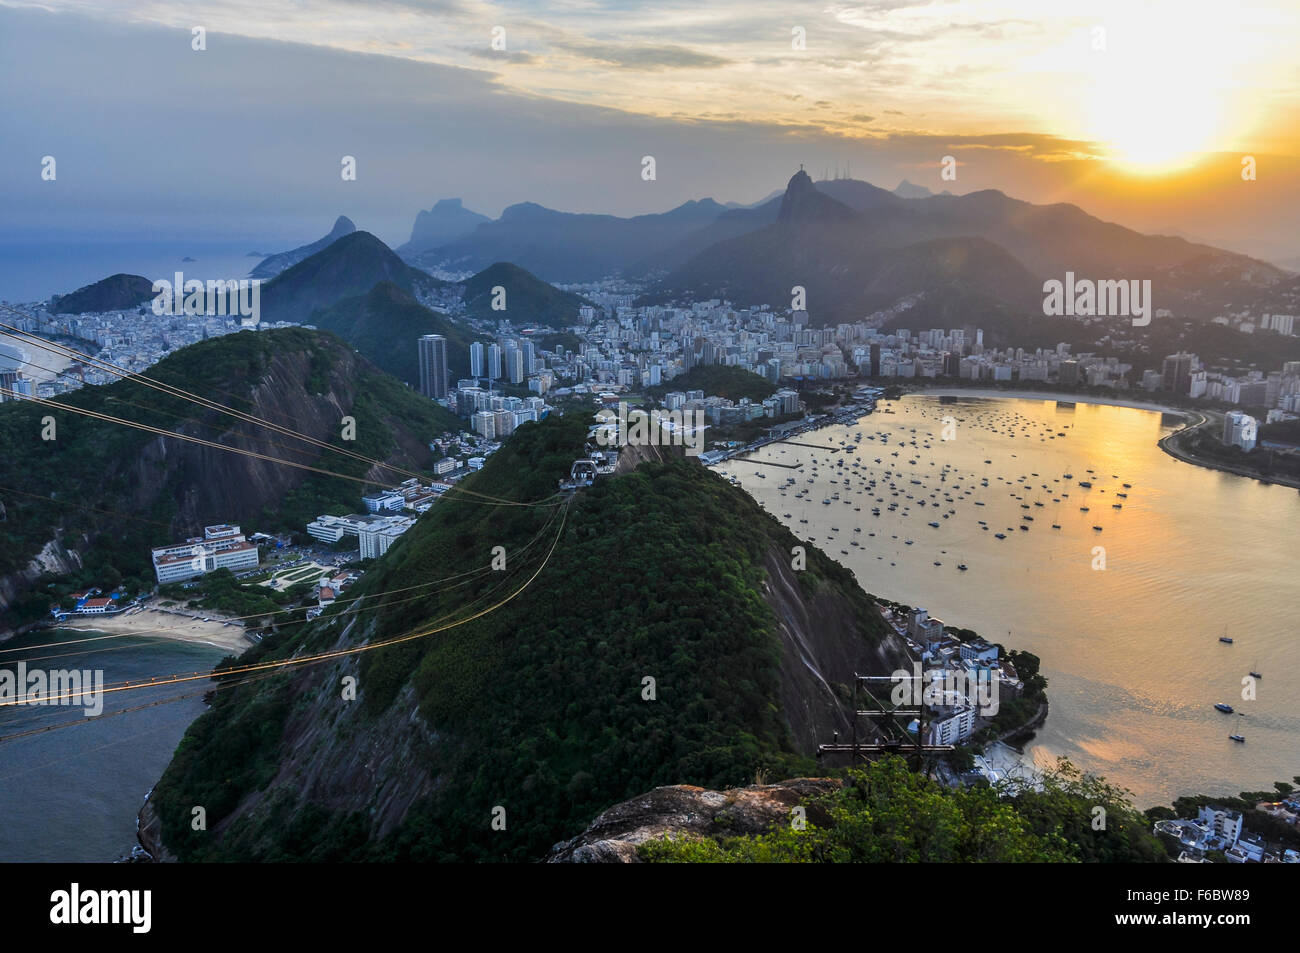 Panoramic view of Rio de Janeiro at sunset from the Sugar Loaf Mountain, Brazil Stock Photo